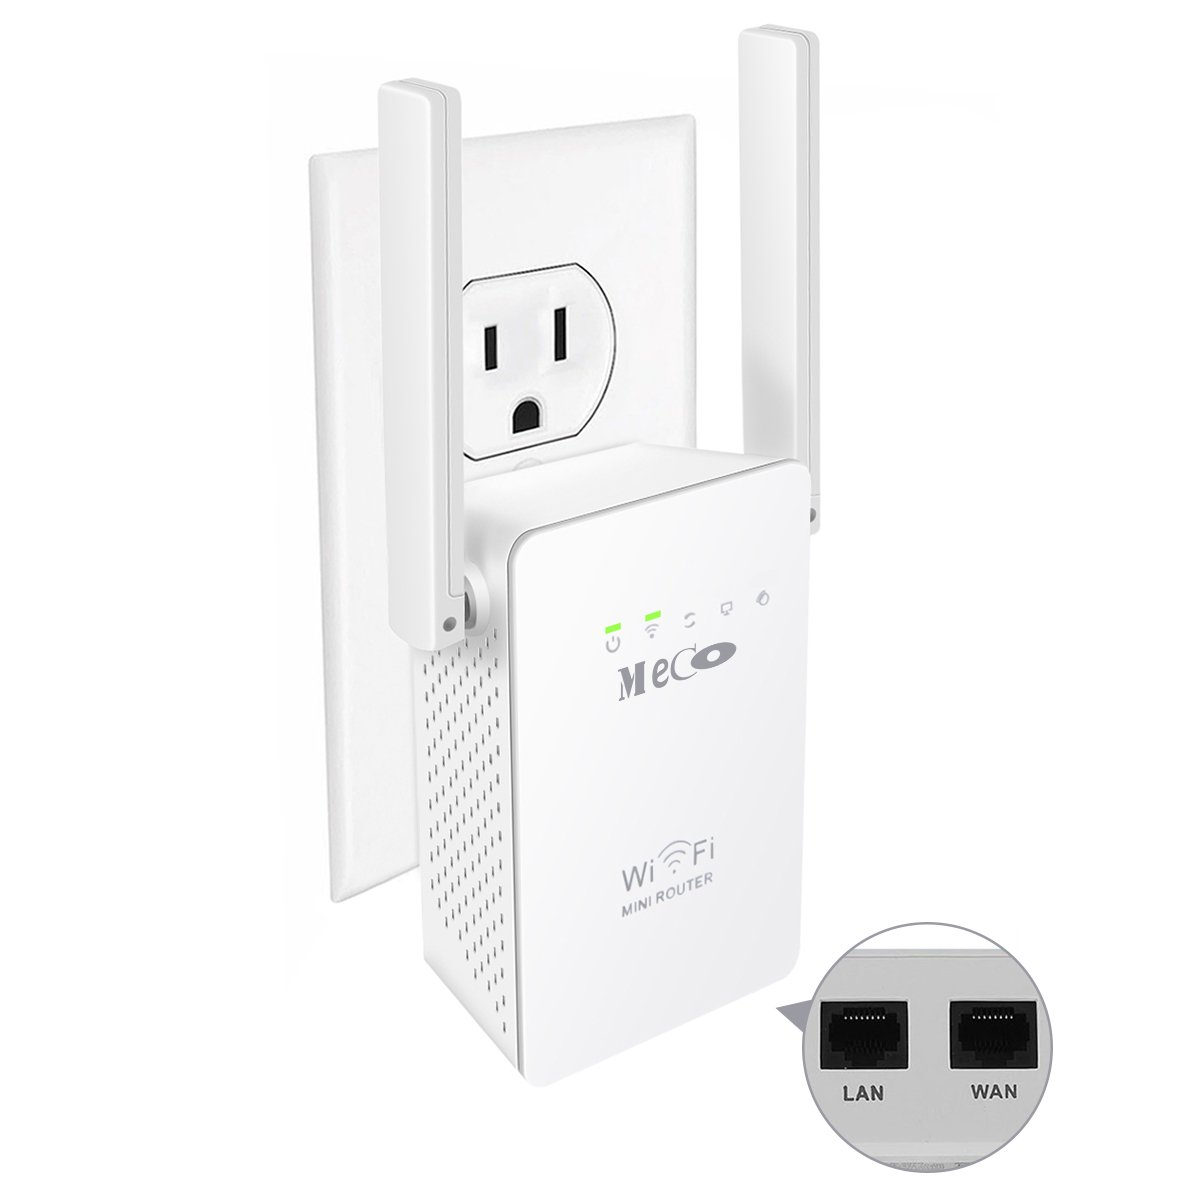 WiFi Range Extender, MECO N300 WiFi Repeater Router WiFi Signal Booster Amplifier Wireless Access Point Mini AP 3-in-1 Mode with 2 Ethernet Port Wall Plug 2 External Antennas and WPS Button ,Extends WiFi to Smart Home White